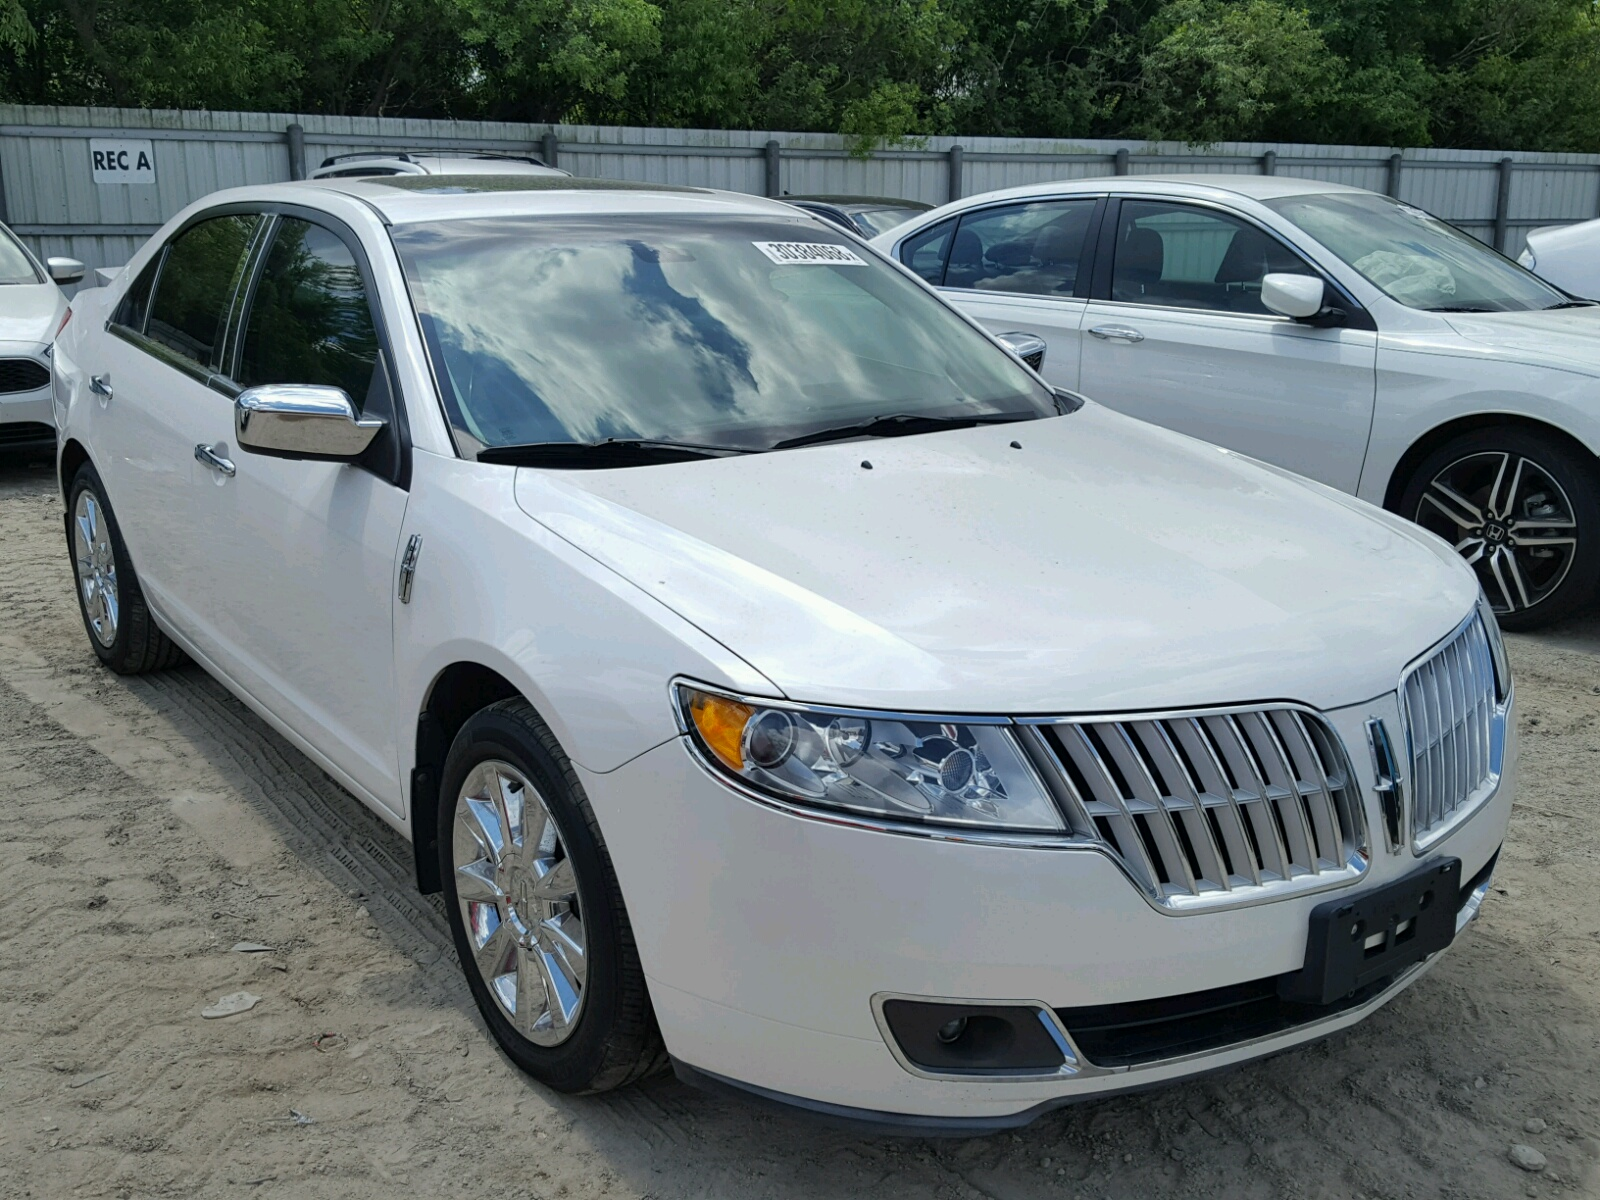 are pose viewing wallpaper in titled side lincoln mkz you black